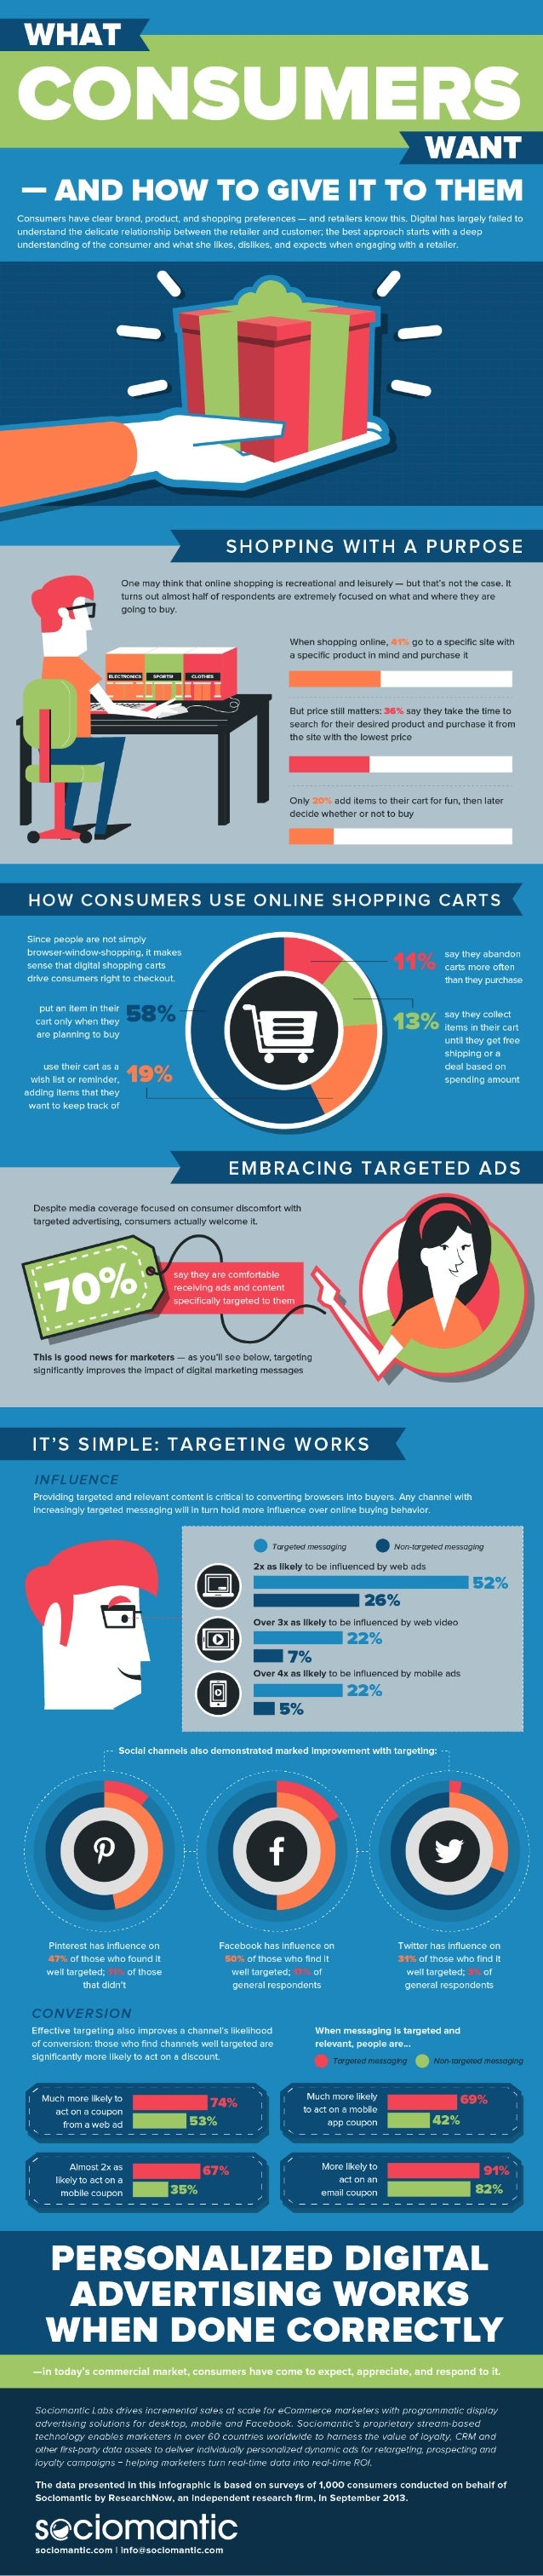 What Consumers Want Infographic - Sociomantic Labs